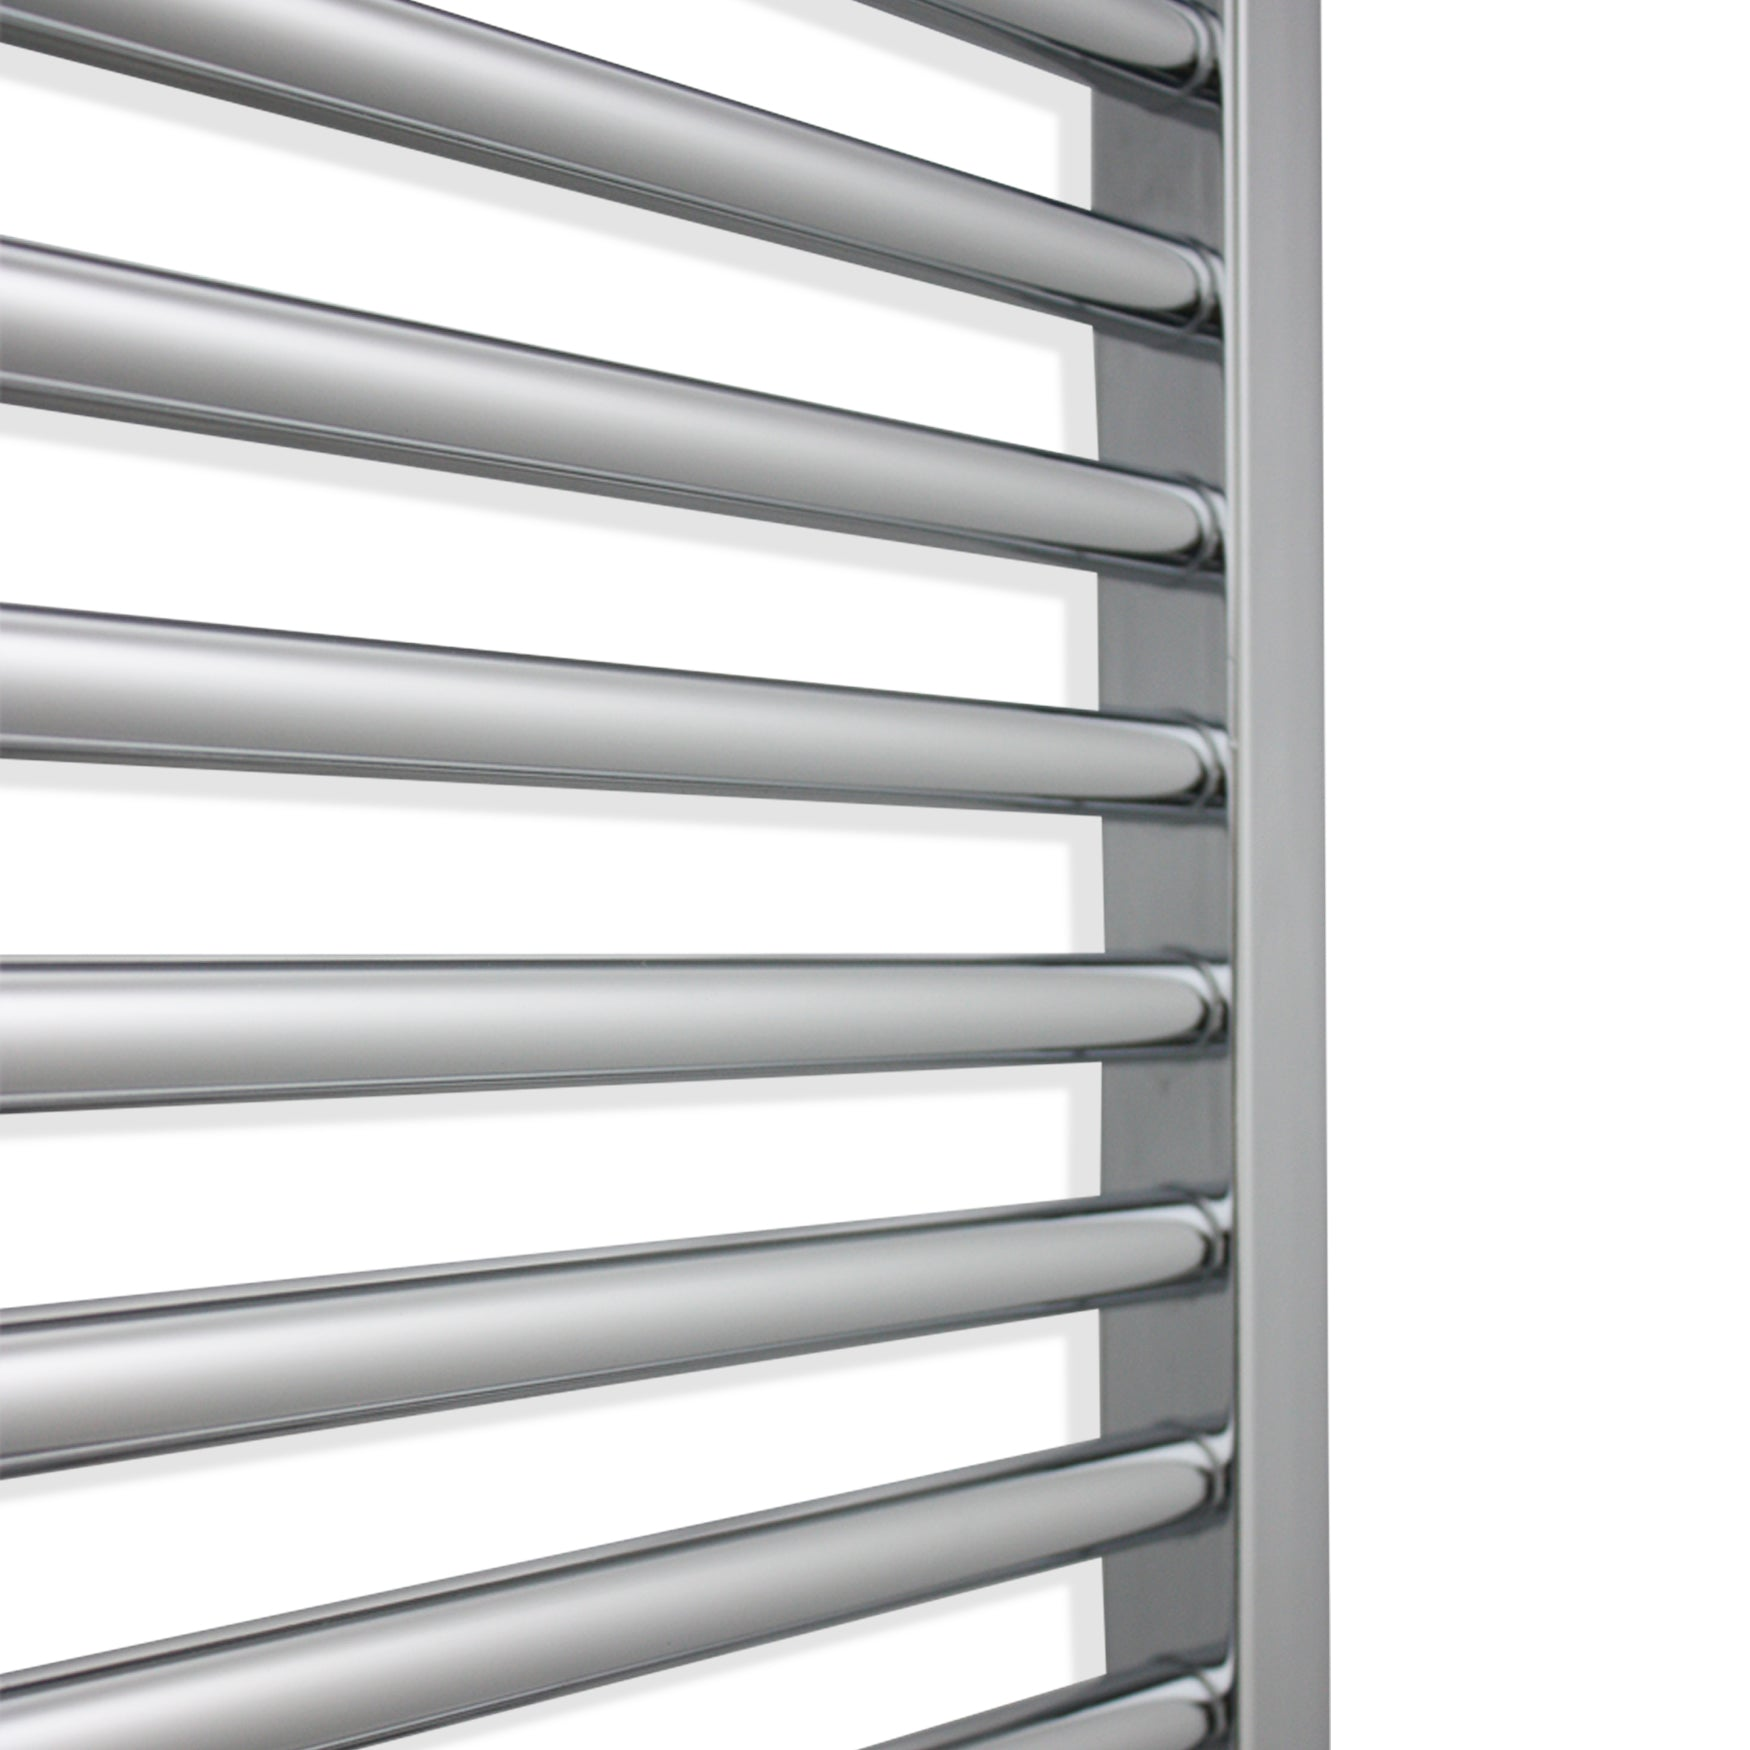 300mm Wide 1200mm High Flat Chrome Pre-Filled Electric Heated Towel Rail Radiator HTR